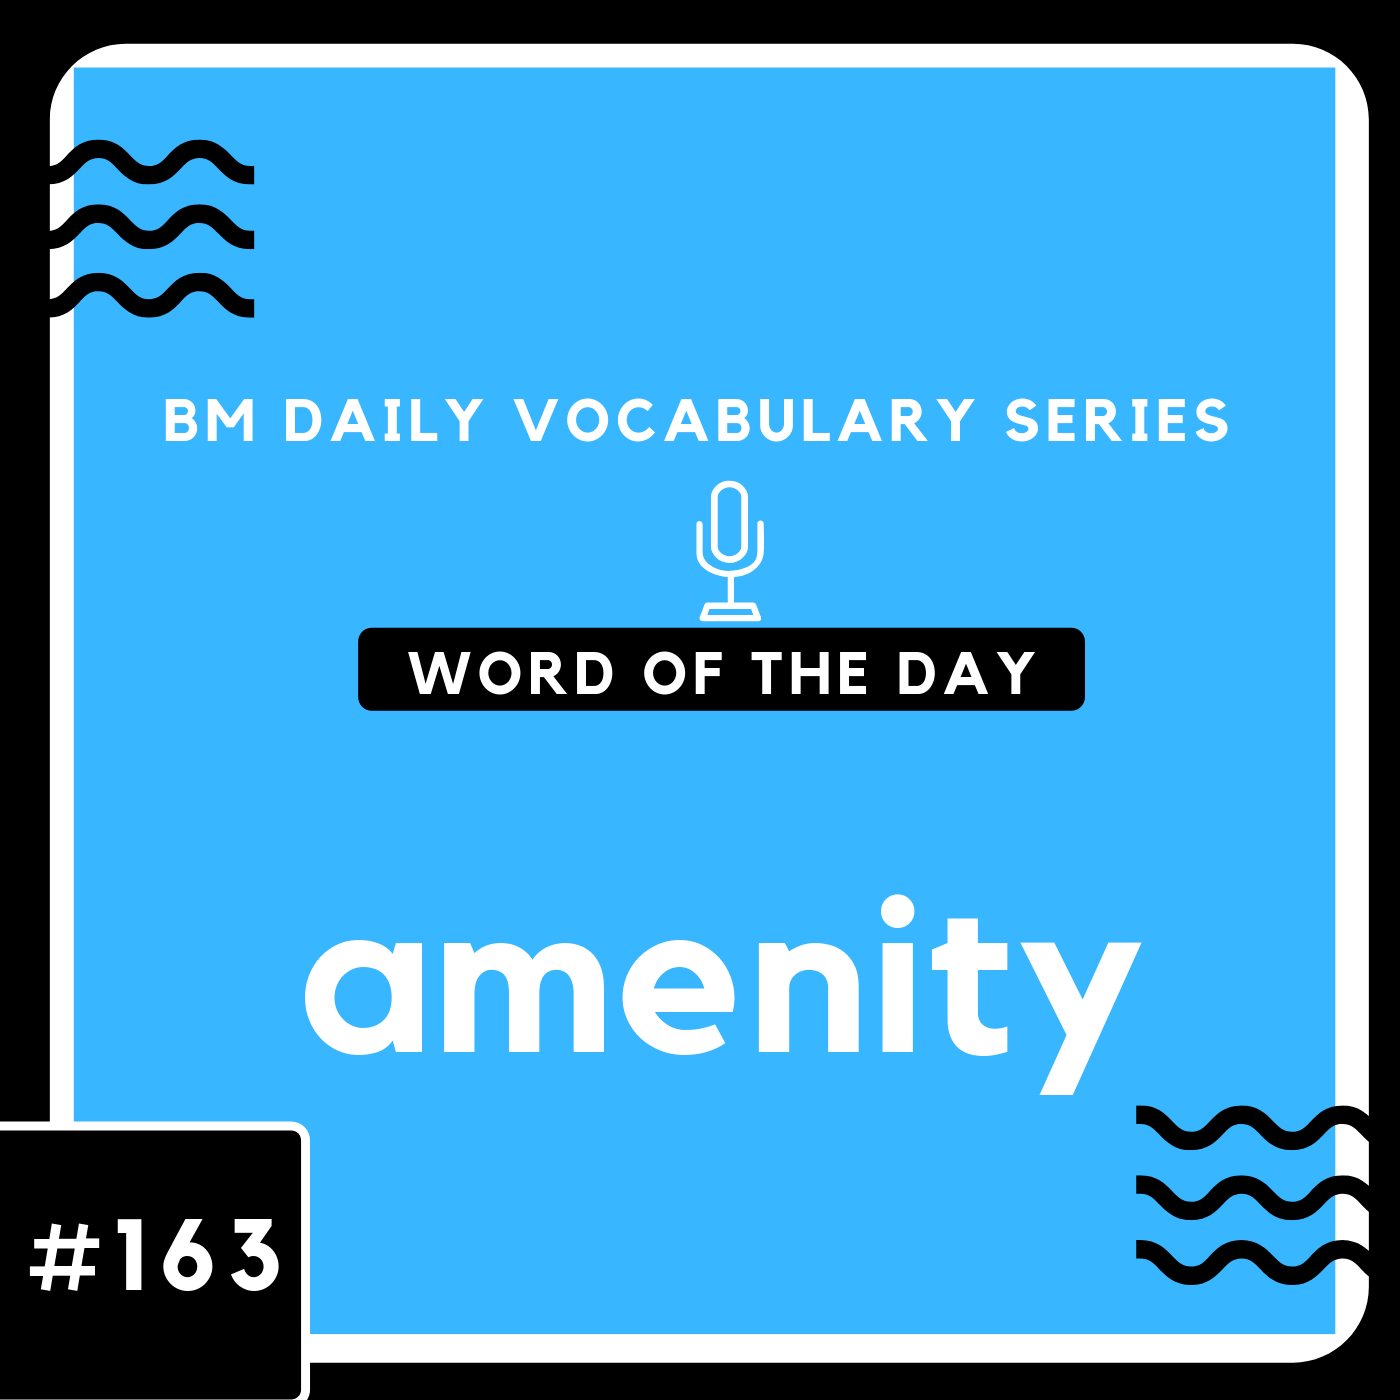 200 BM Daily Vocabulary #163 | amenity